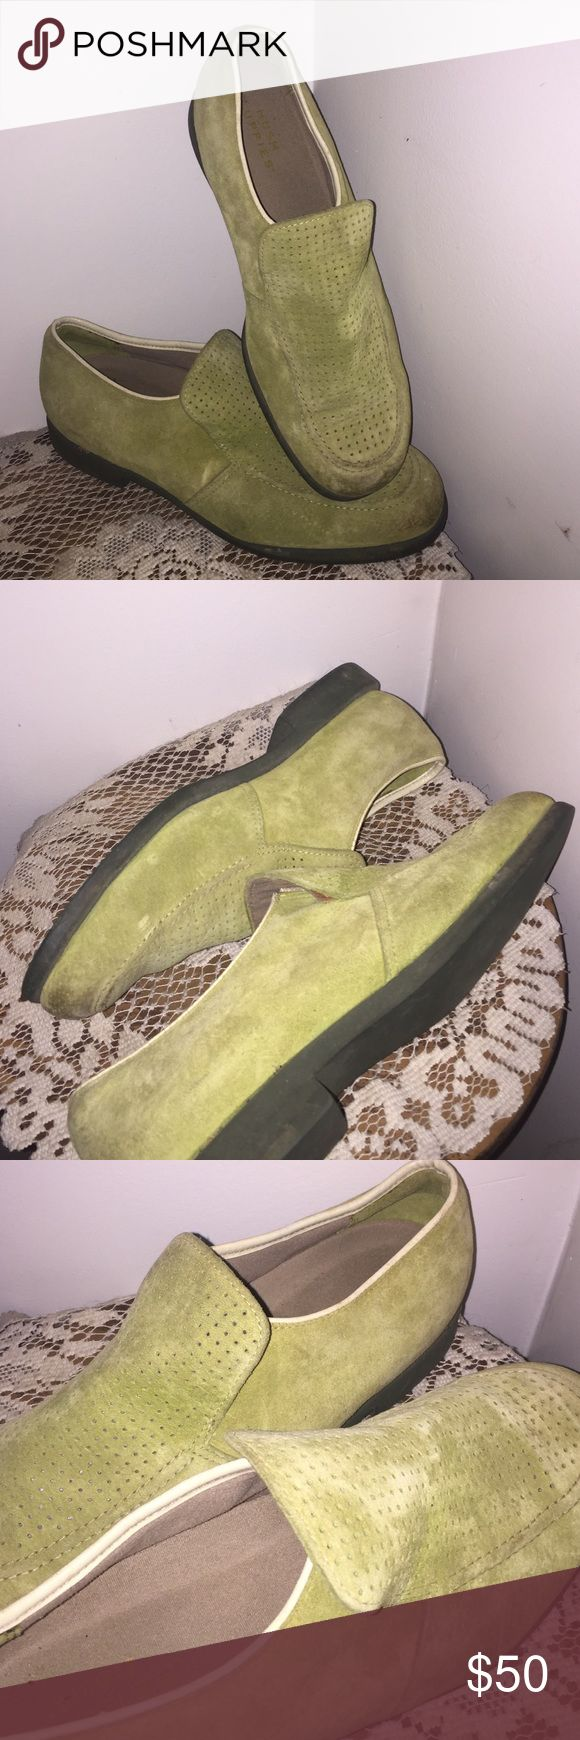 Hush puppies loafers green suede slip on Hushpuppies loafers green suede slip on. Size 9 1/2. Flawless. Hush Puppies Shoes Loafers & Slip-Ons